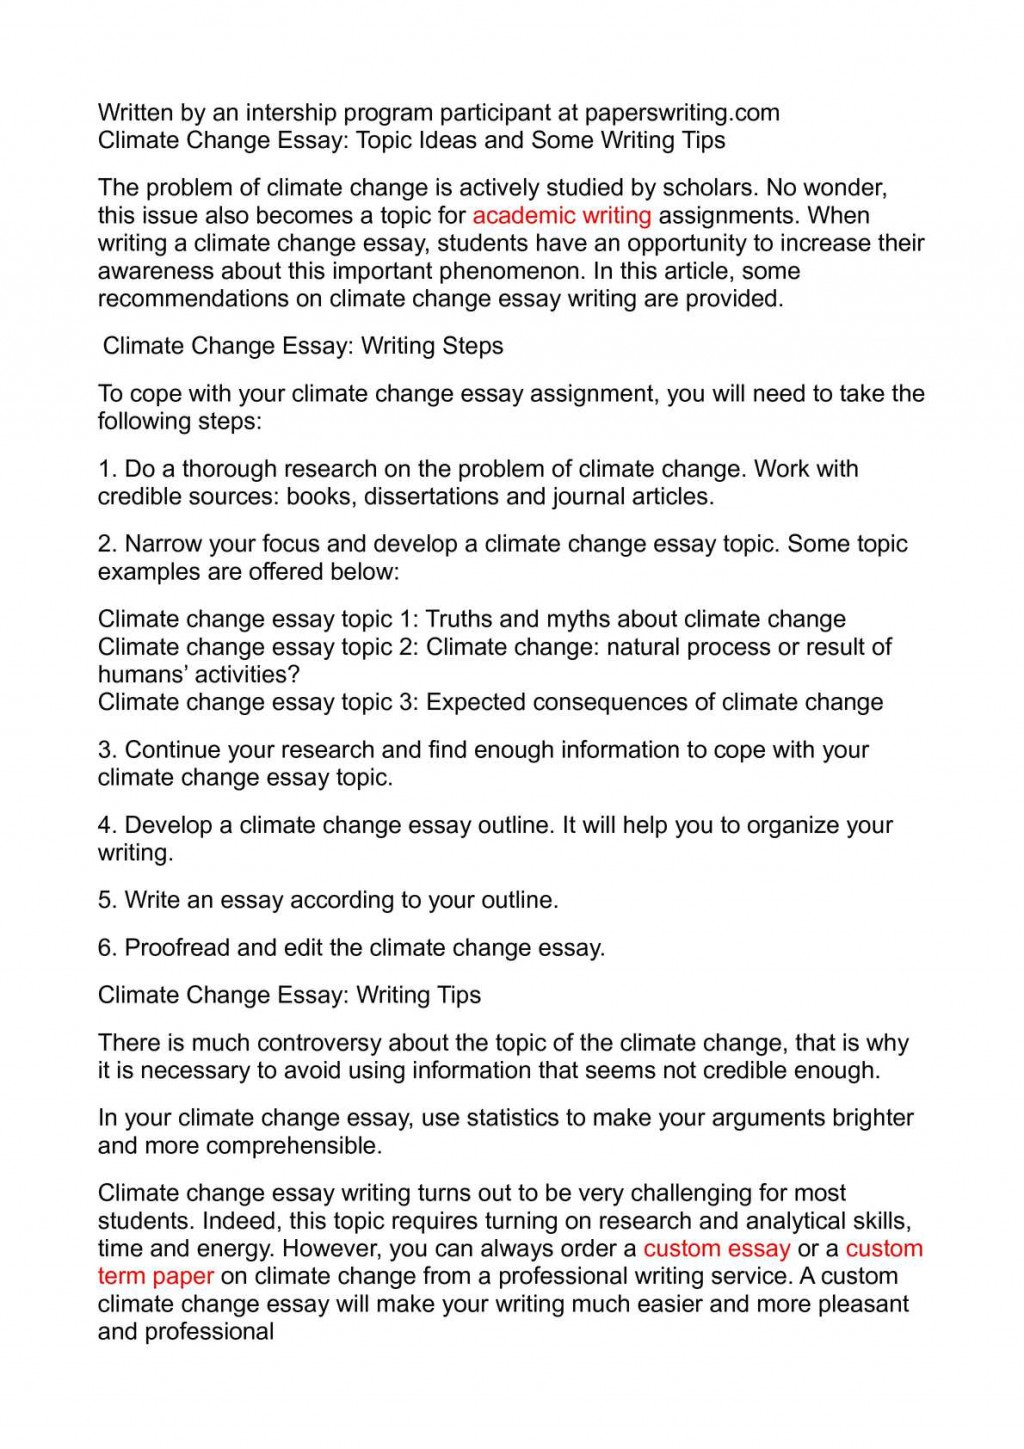 002 Climate Change Research Paper Topic Essay Topics Uncategorized Global Warming Ways To St Oracleboss Wonderful For Large